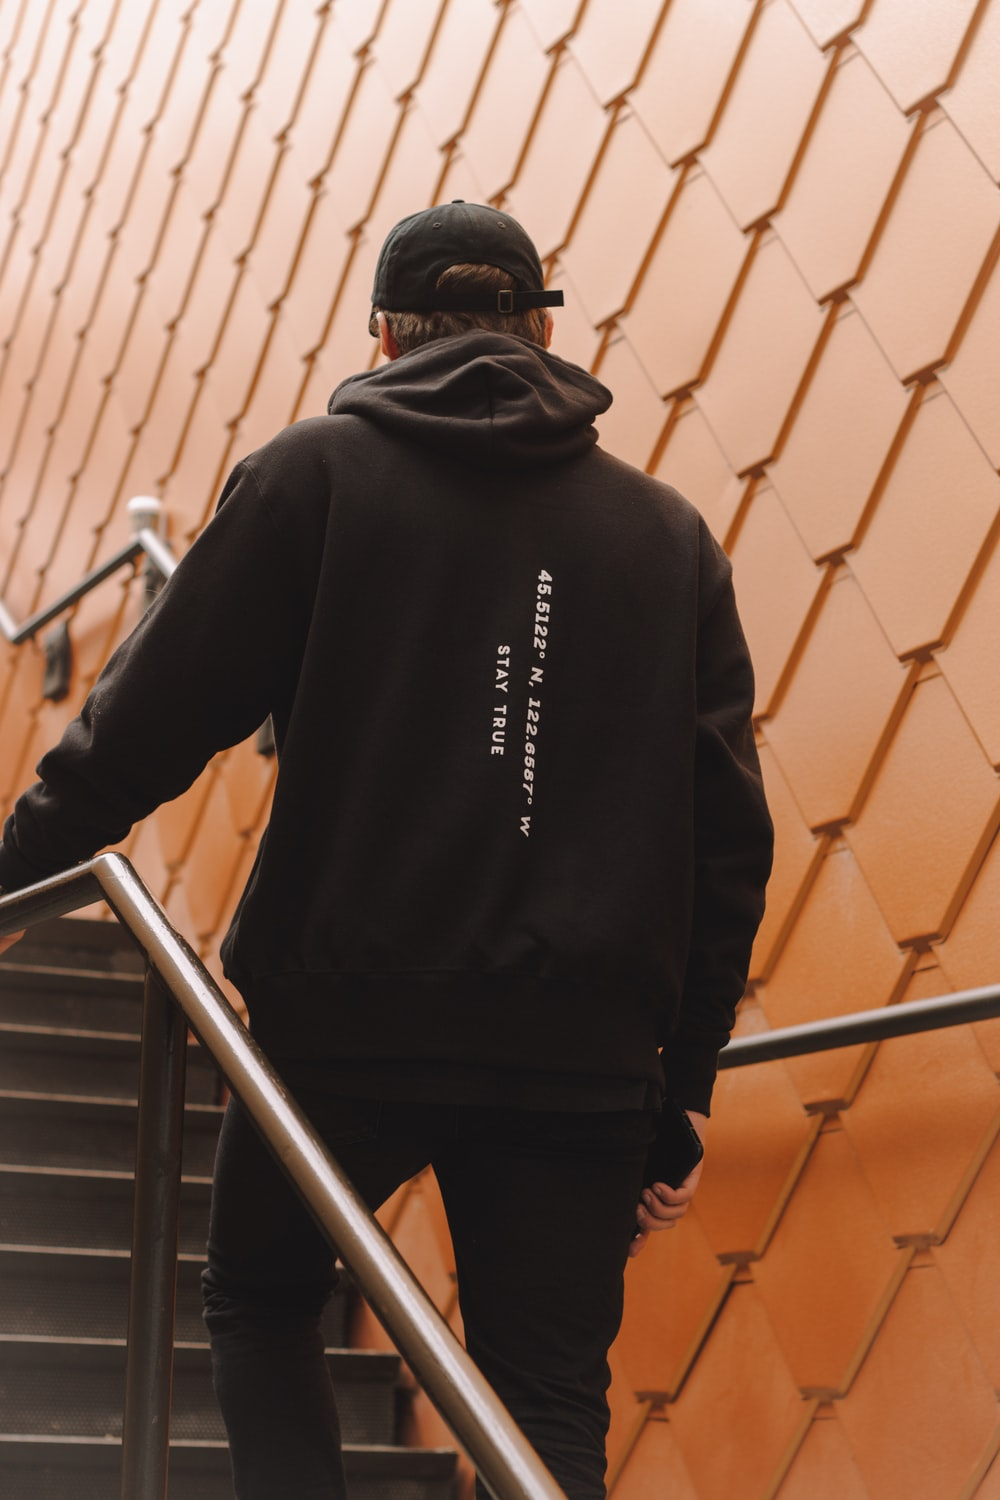 man in black hoodie on staircase